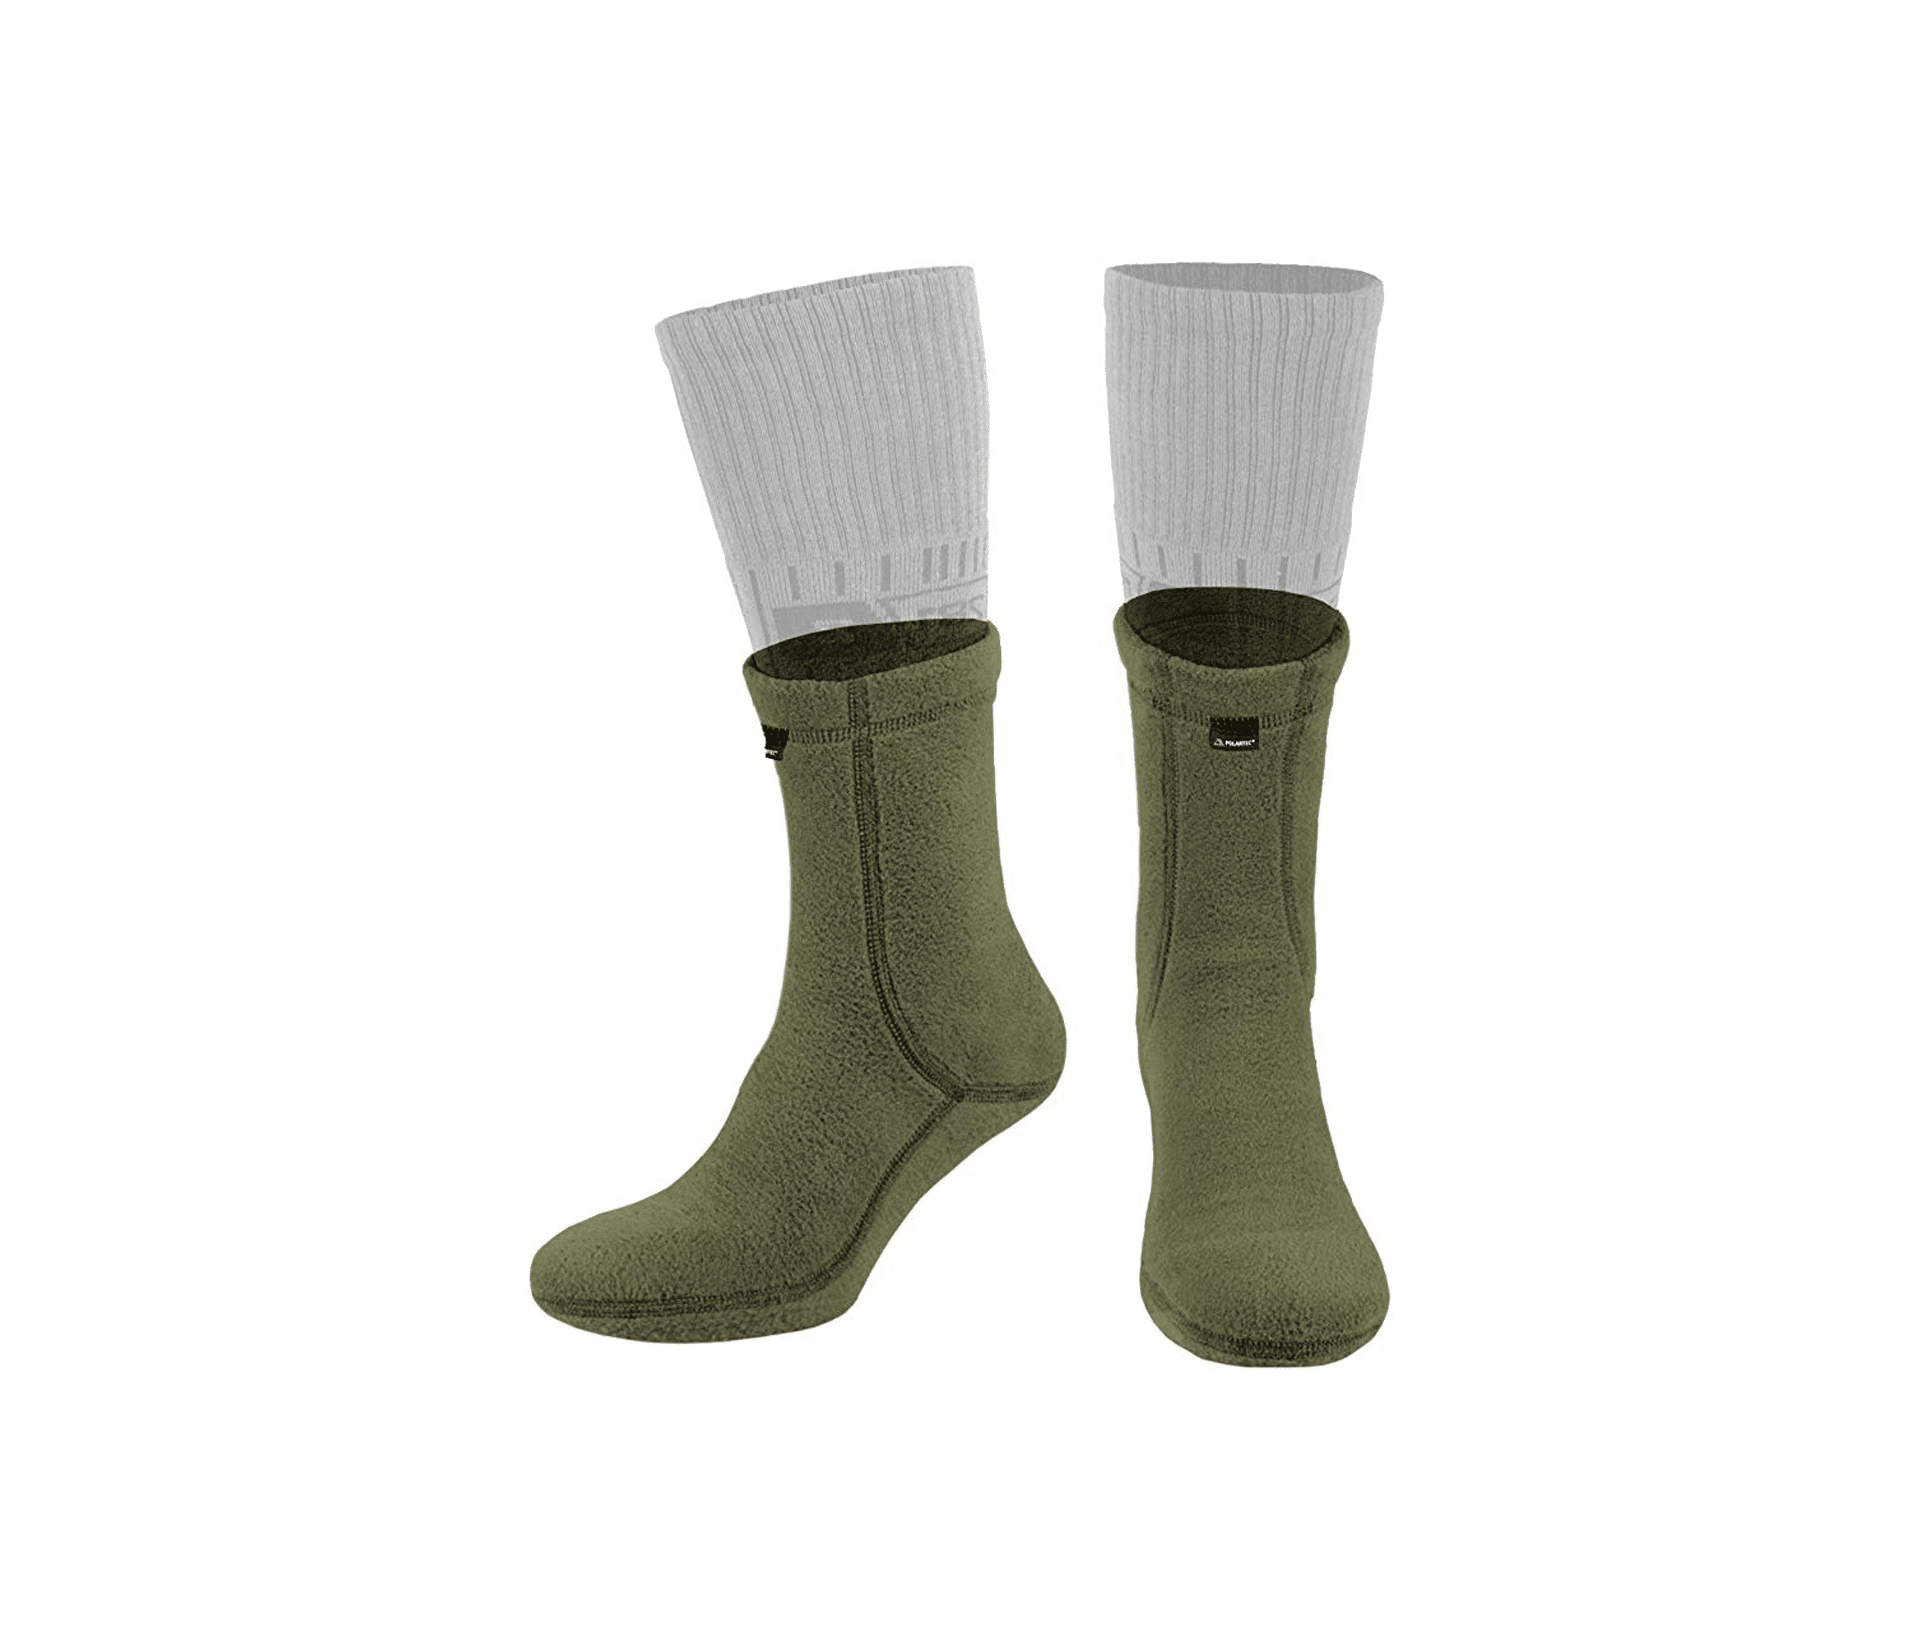 281Z Military Boot Socks